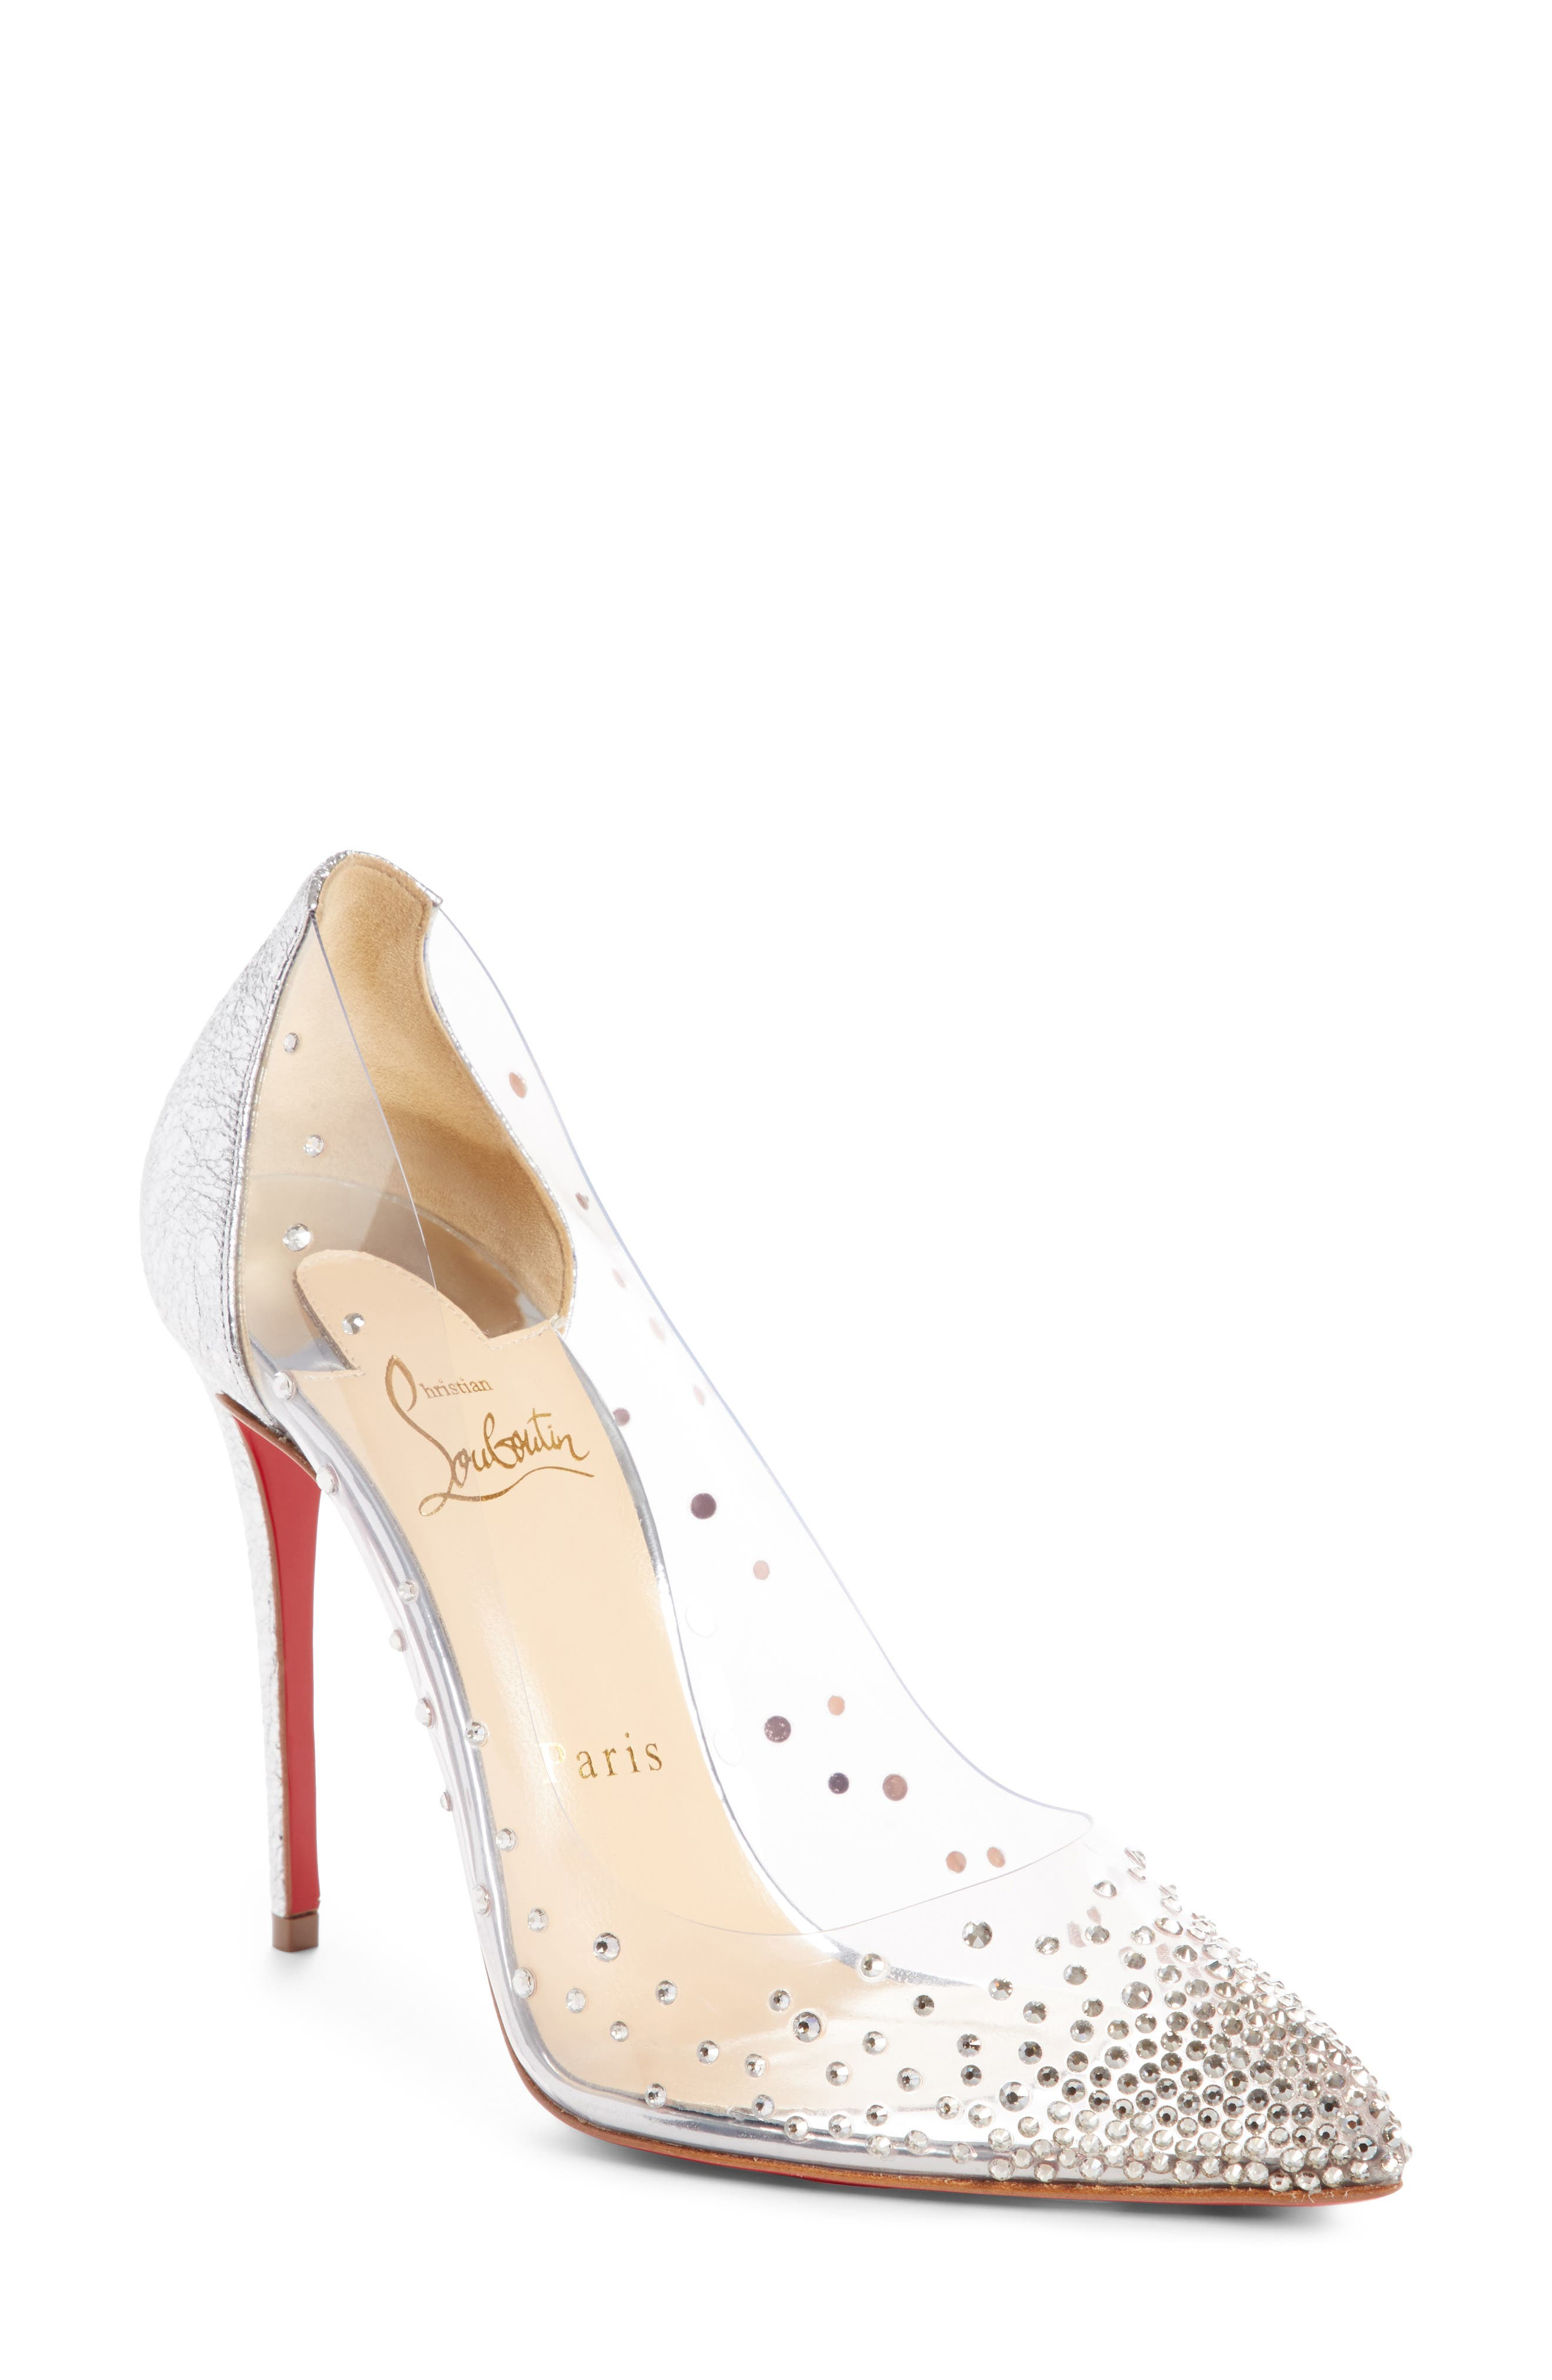 CHRISTIAN LOUBOUTIN Degrastrass Clear Embellished Pump, Main, color, 042